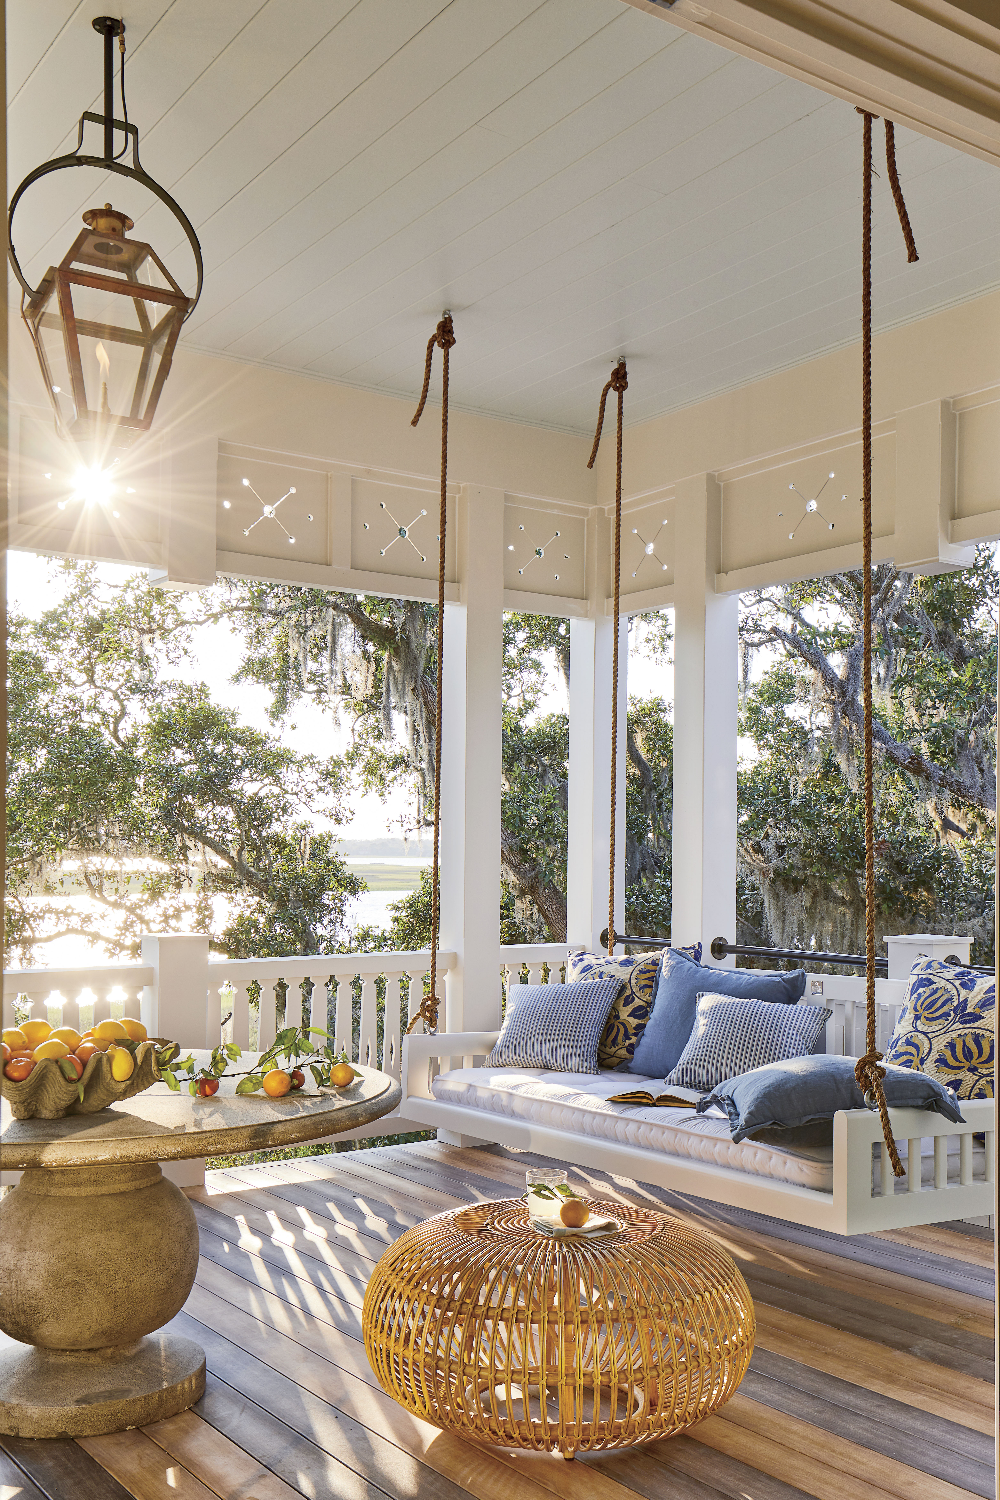 Southern Charm in the Southern Living Idea House. Here's What You Had to Say